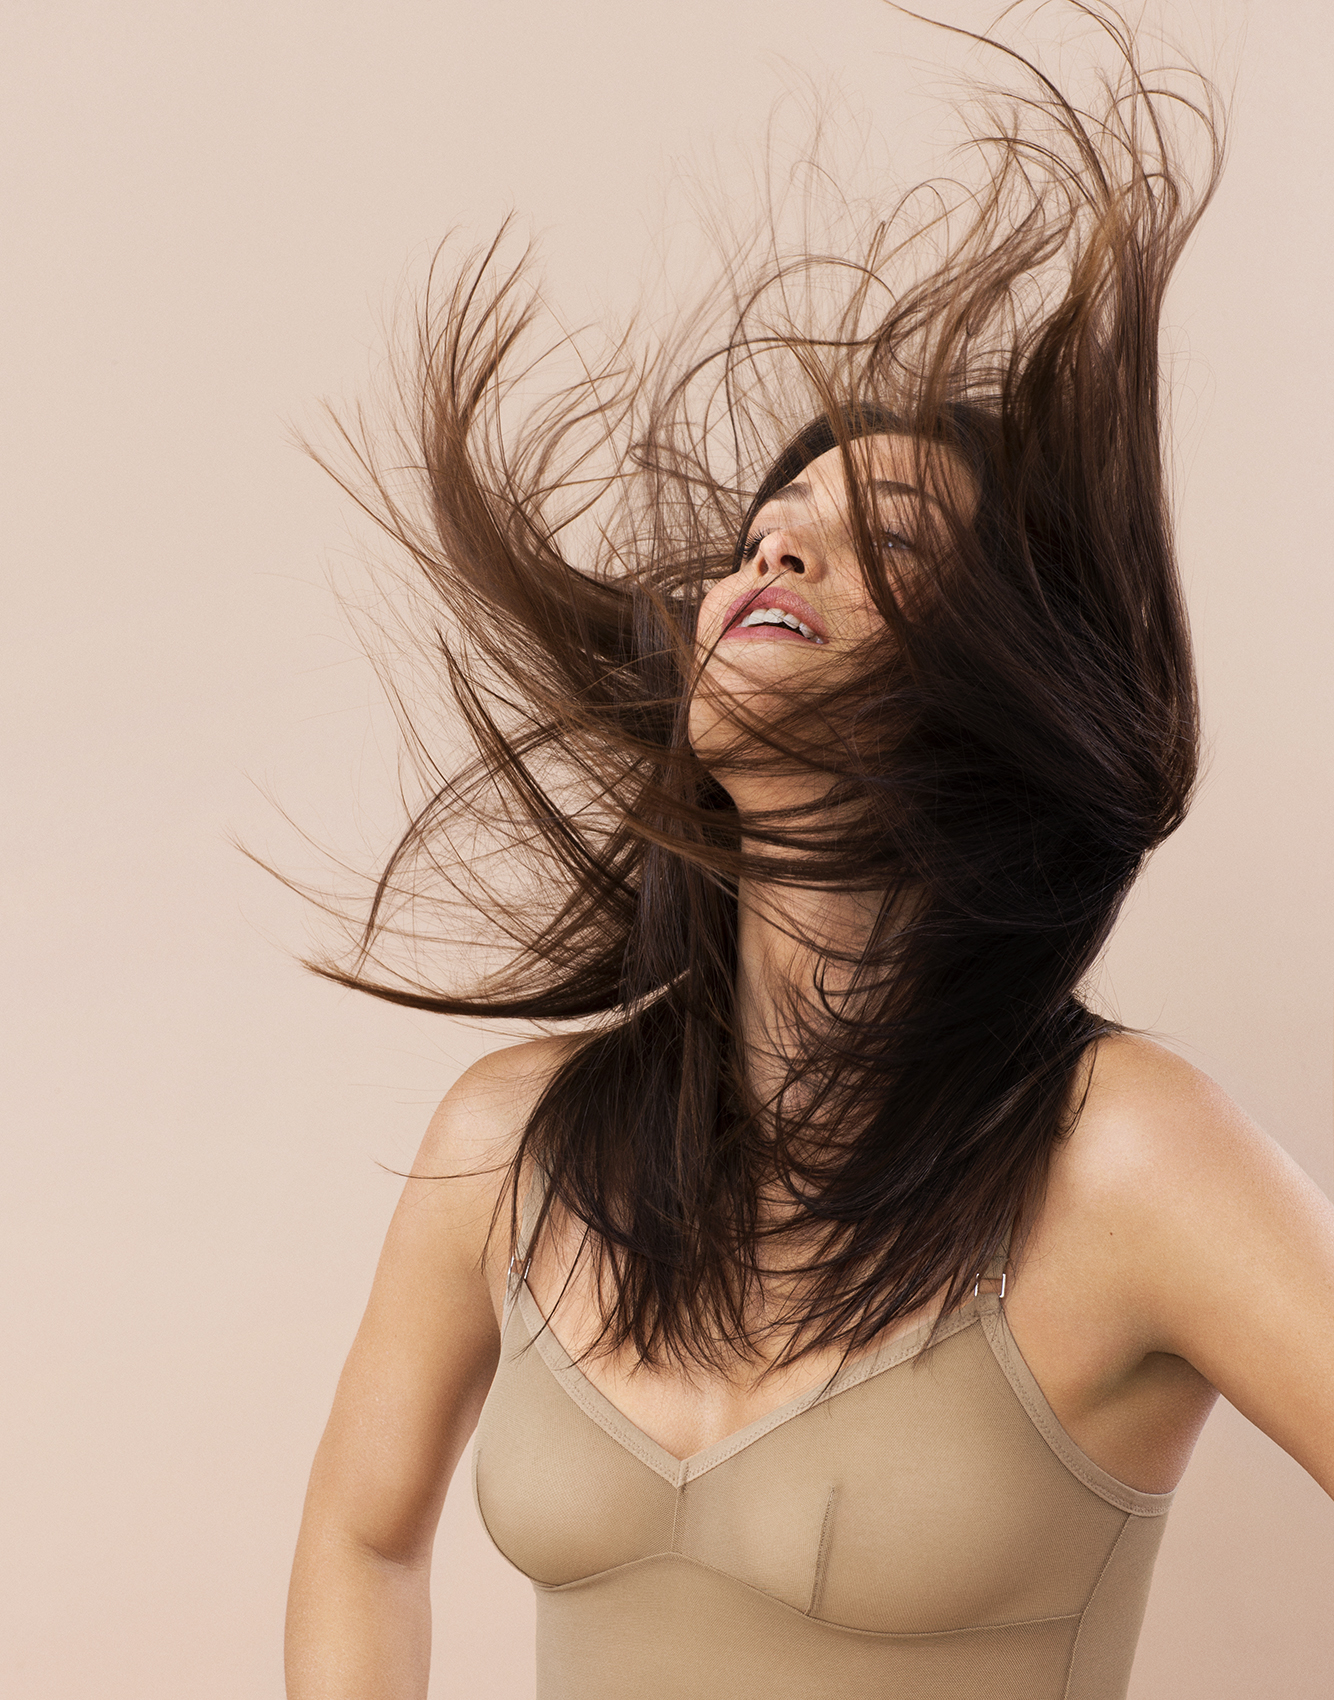 Model with hair in the air